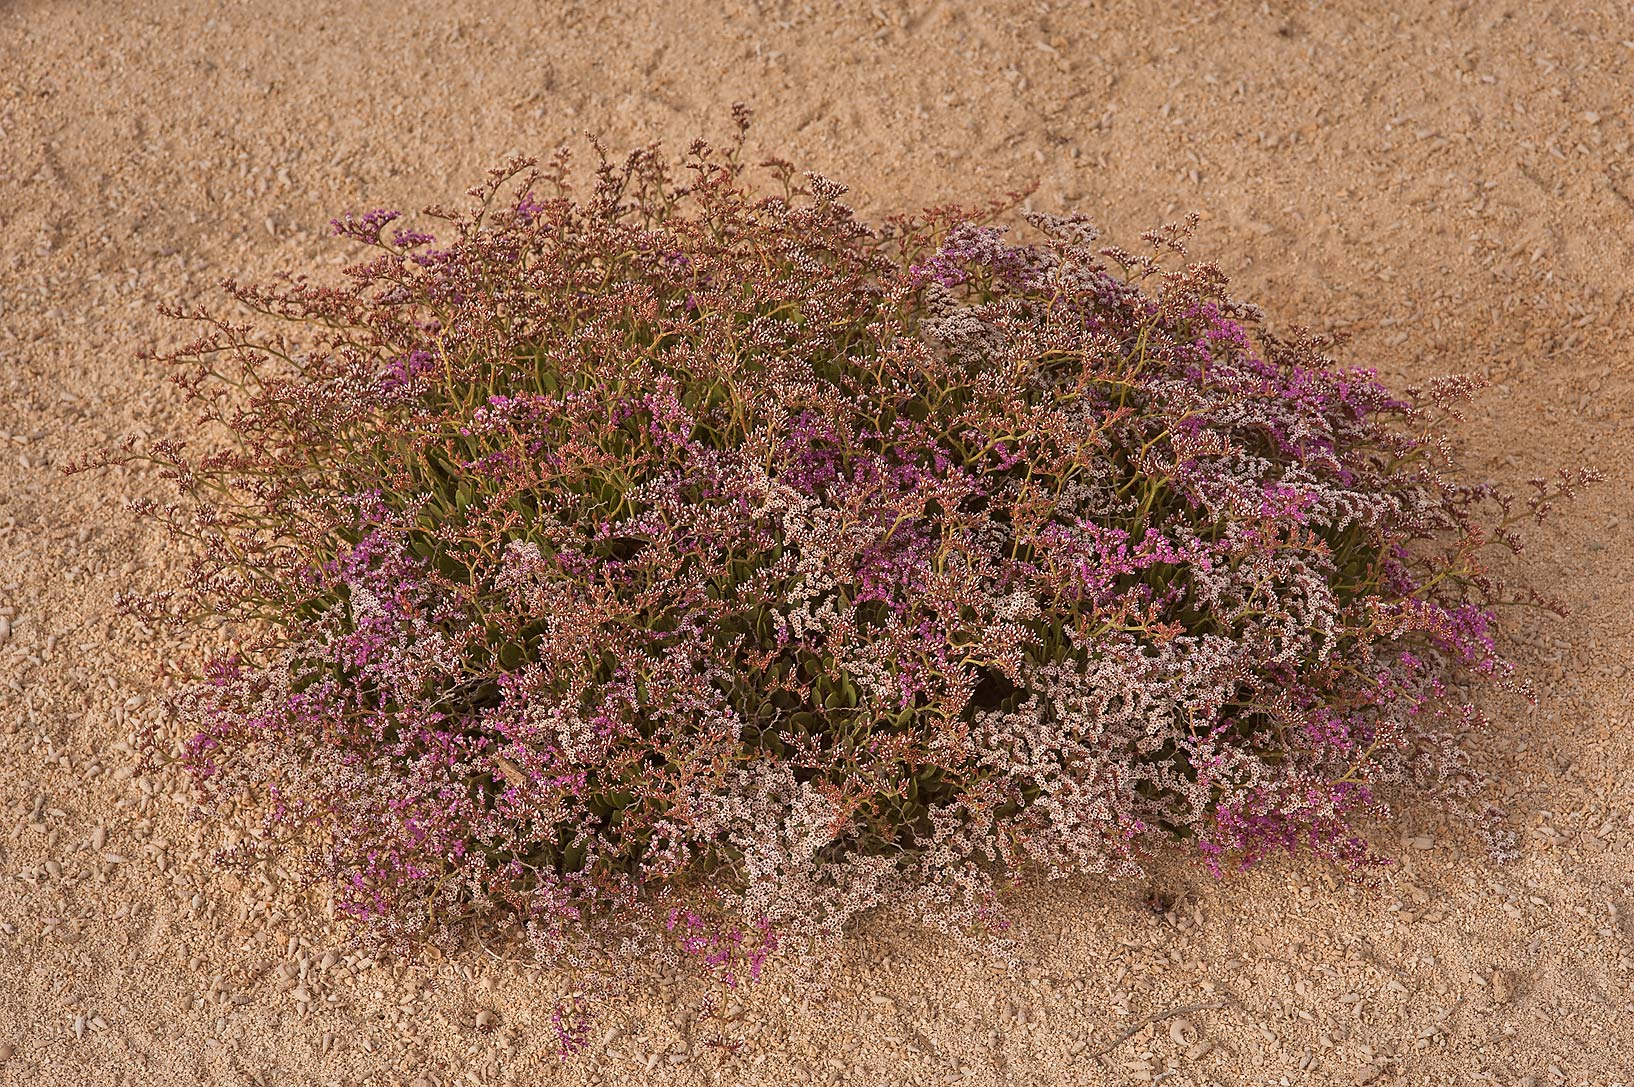 Large plant of Sea lavender (Qetaif, Limonium...in Madinat Al Shamal area. Qatar